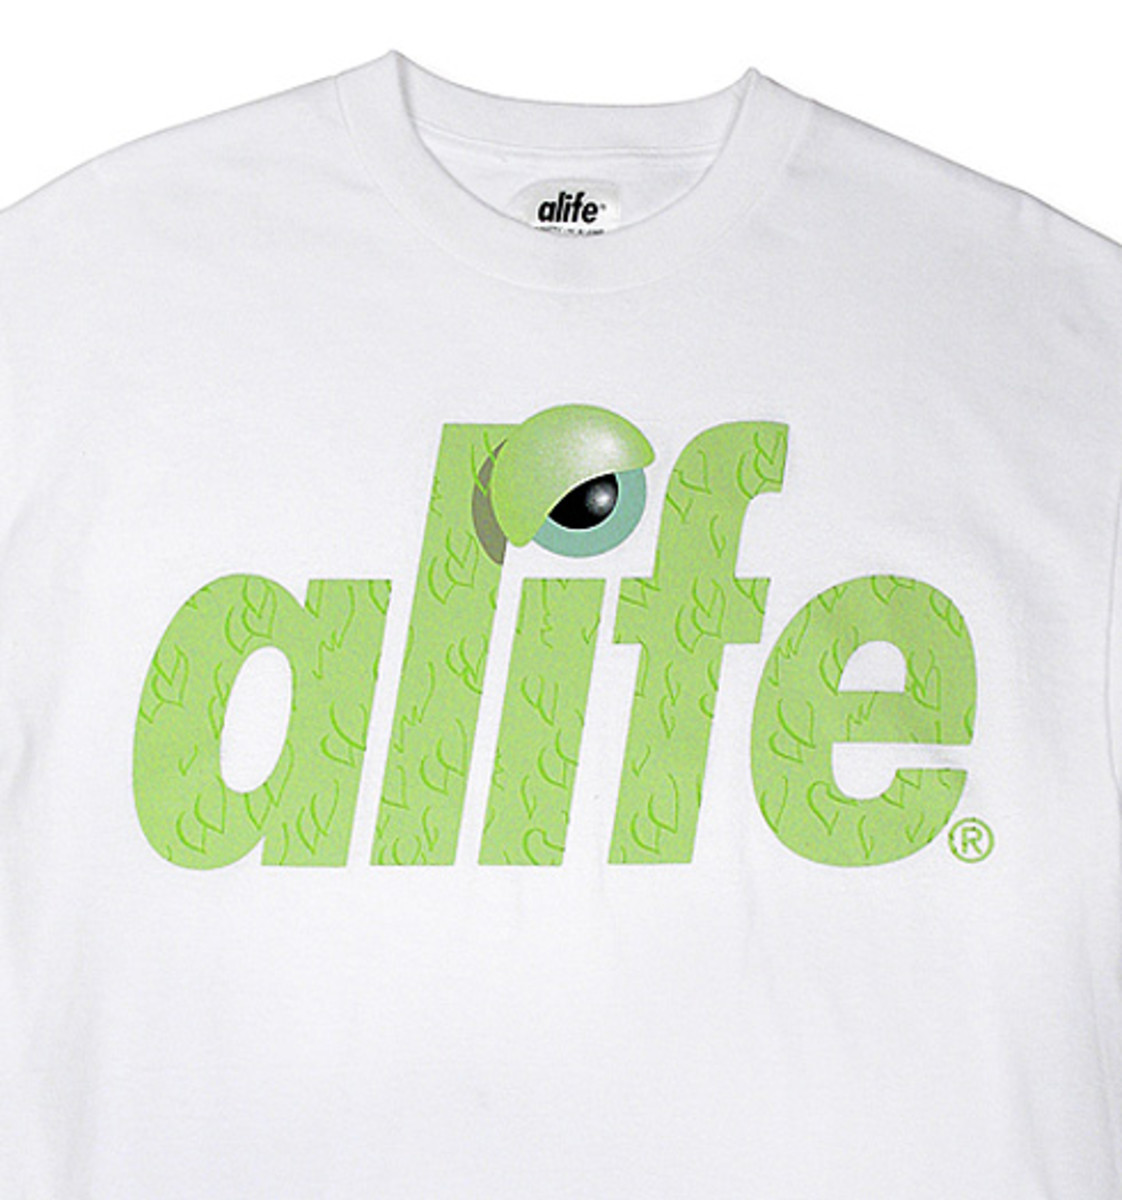 alife_monster_tee_03.jpg